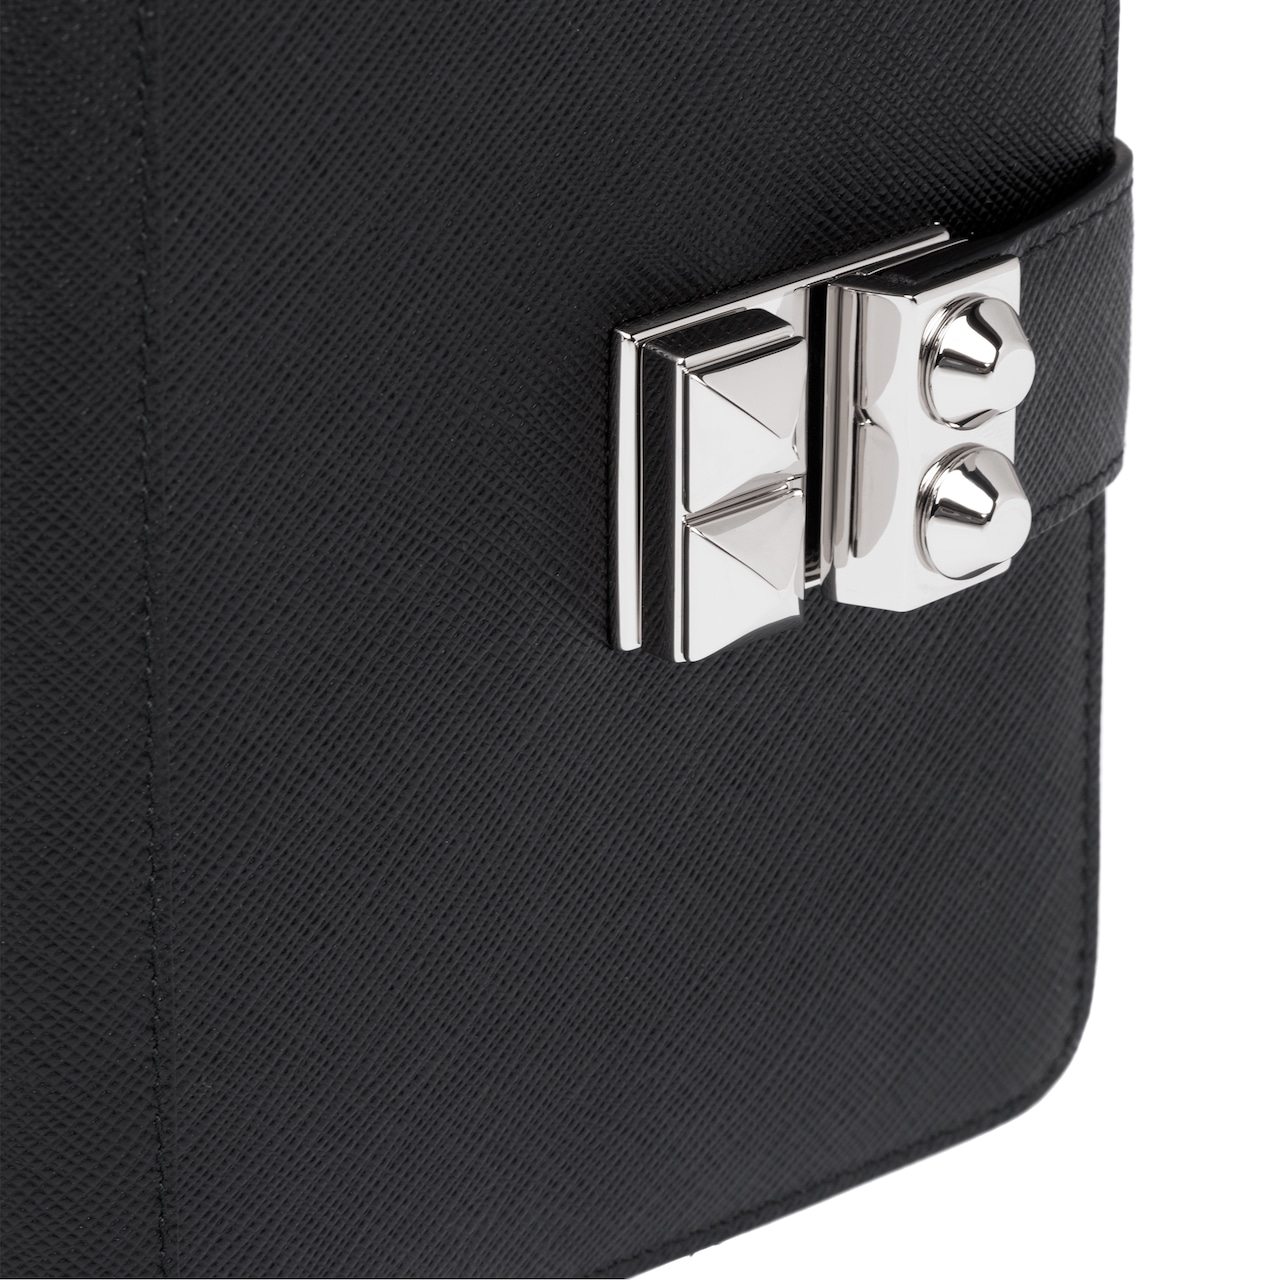 Prada Prada Elektra Saffiano leather pocket diary 6